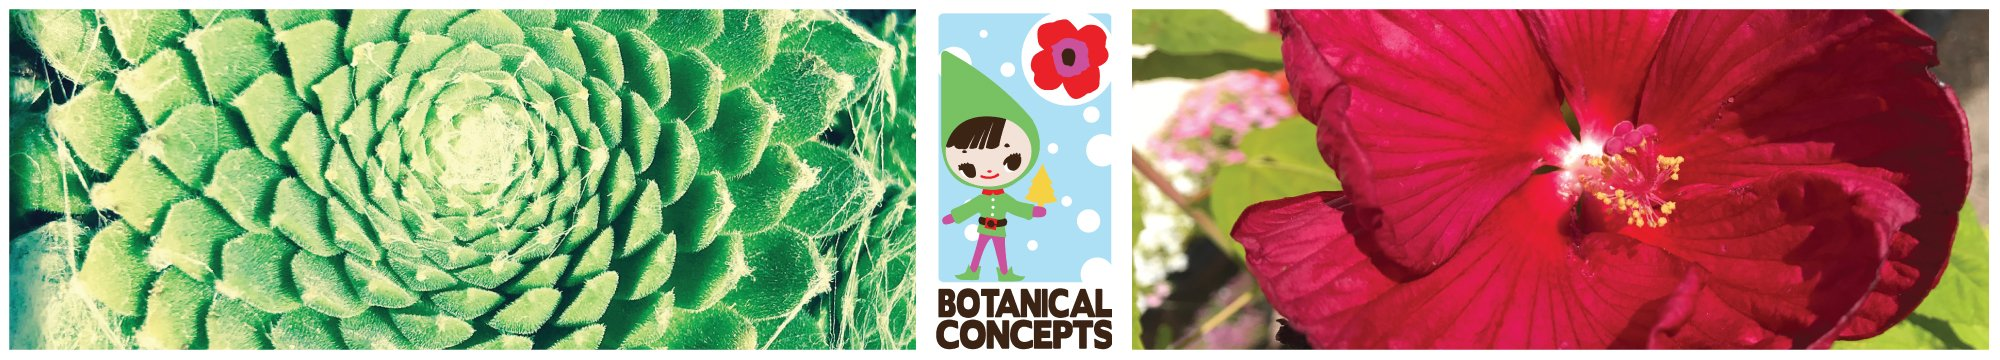 Botanical Concepts